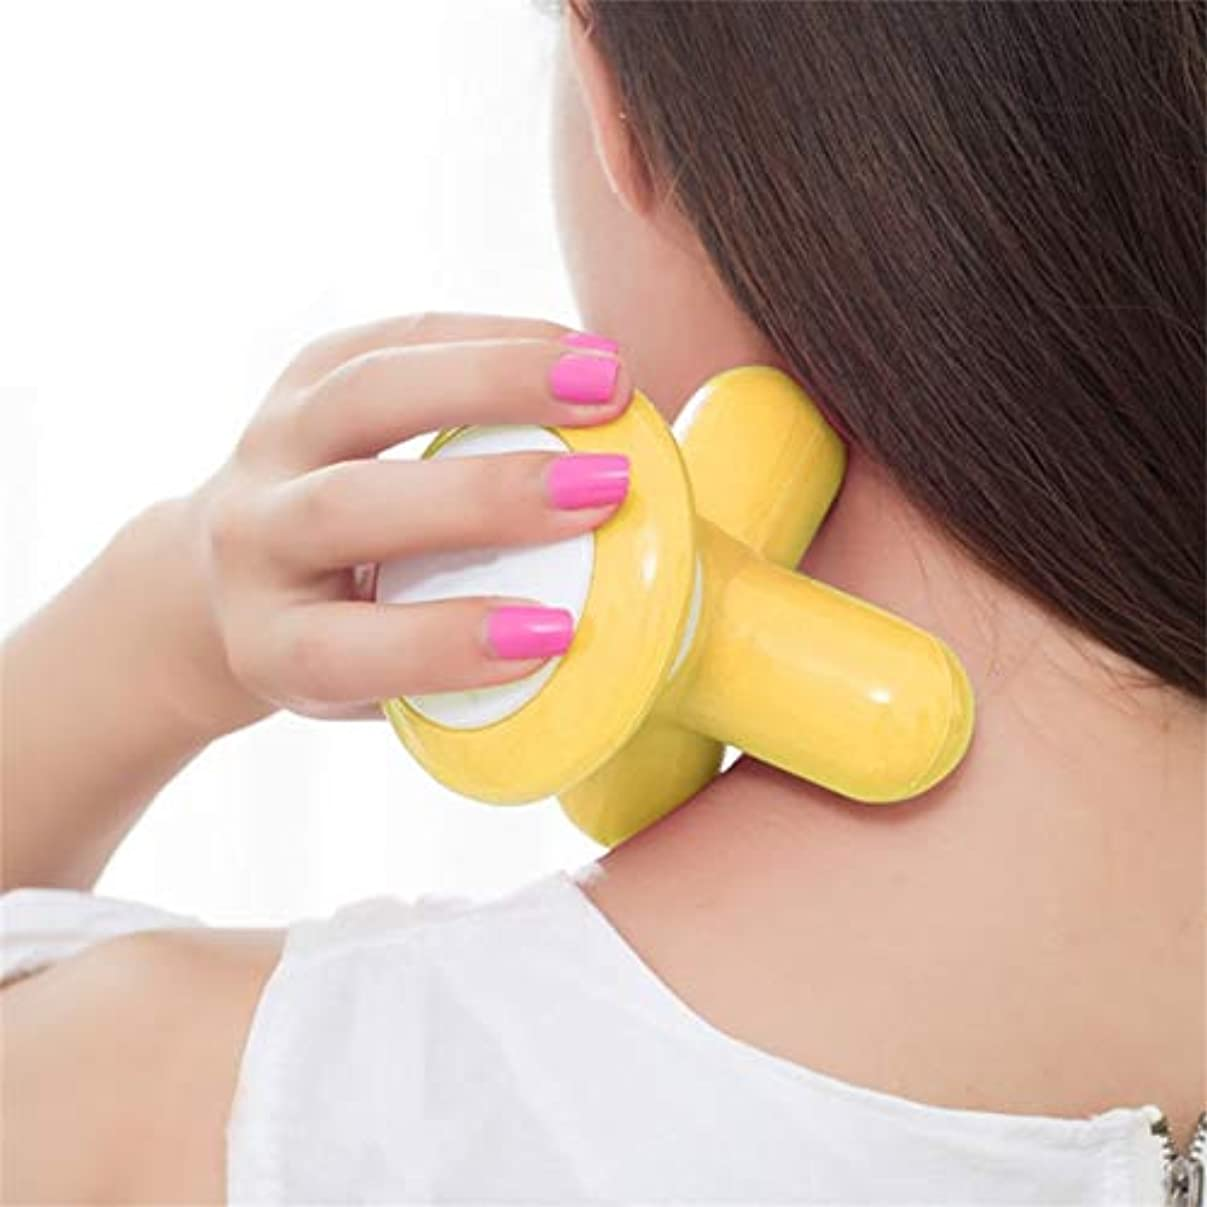 サンダー退屈させる透過性Mini Electric Handled Wave Vibrating Massager USB Battery Full Body Massage Ultra-compact Lightweight Convenient...